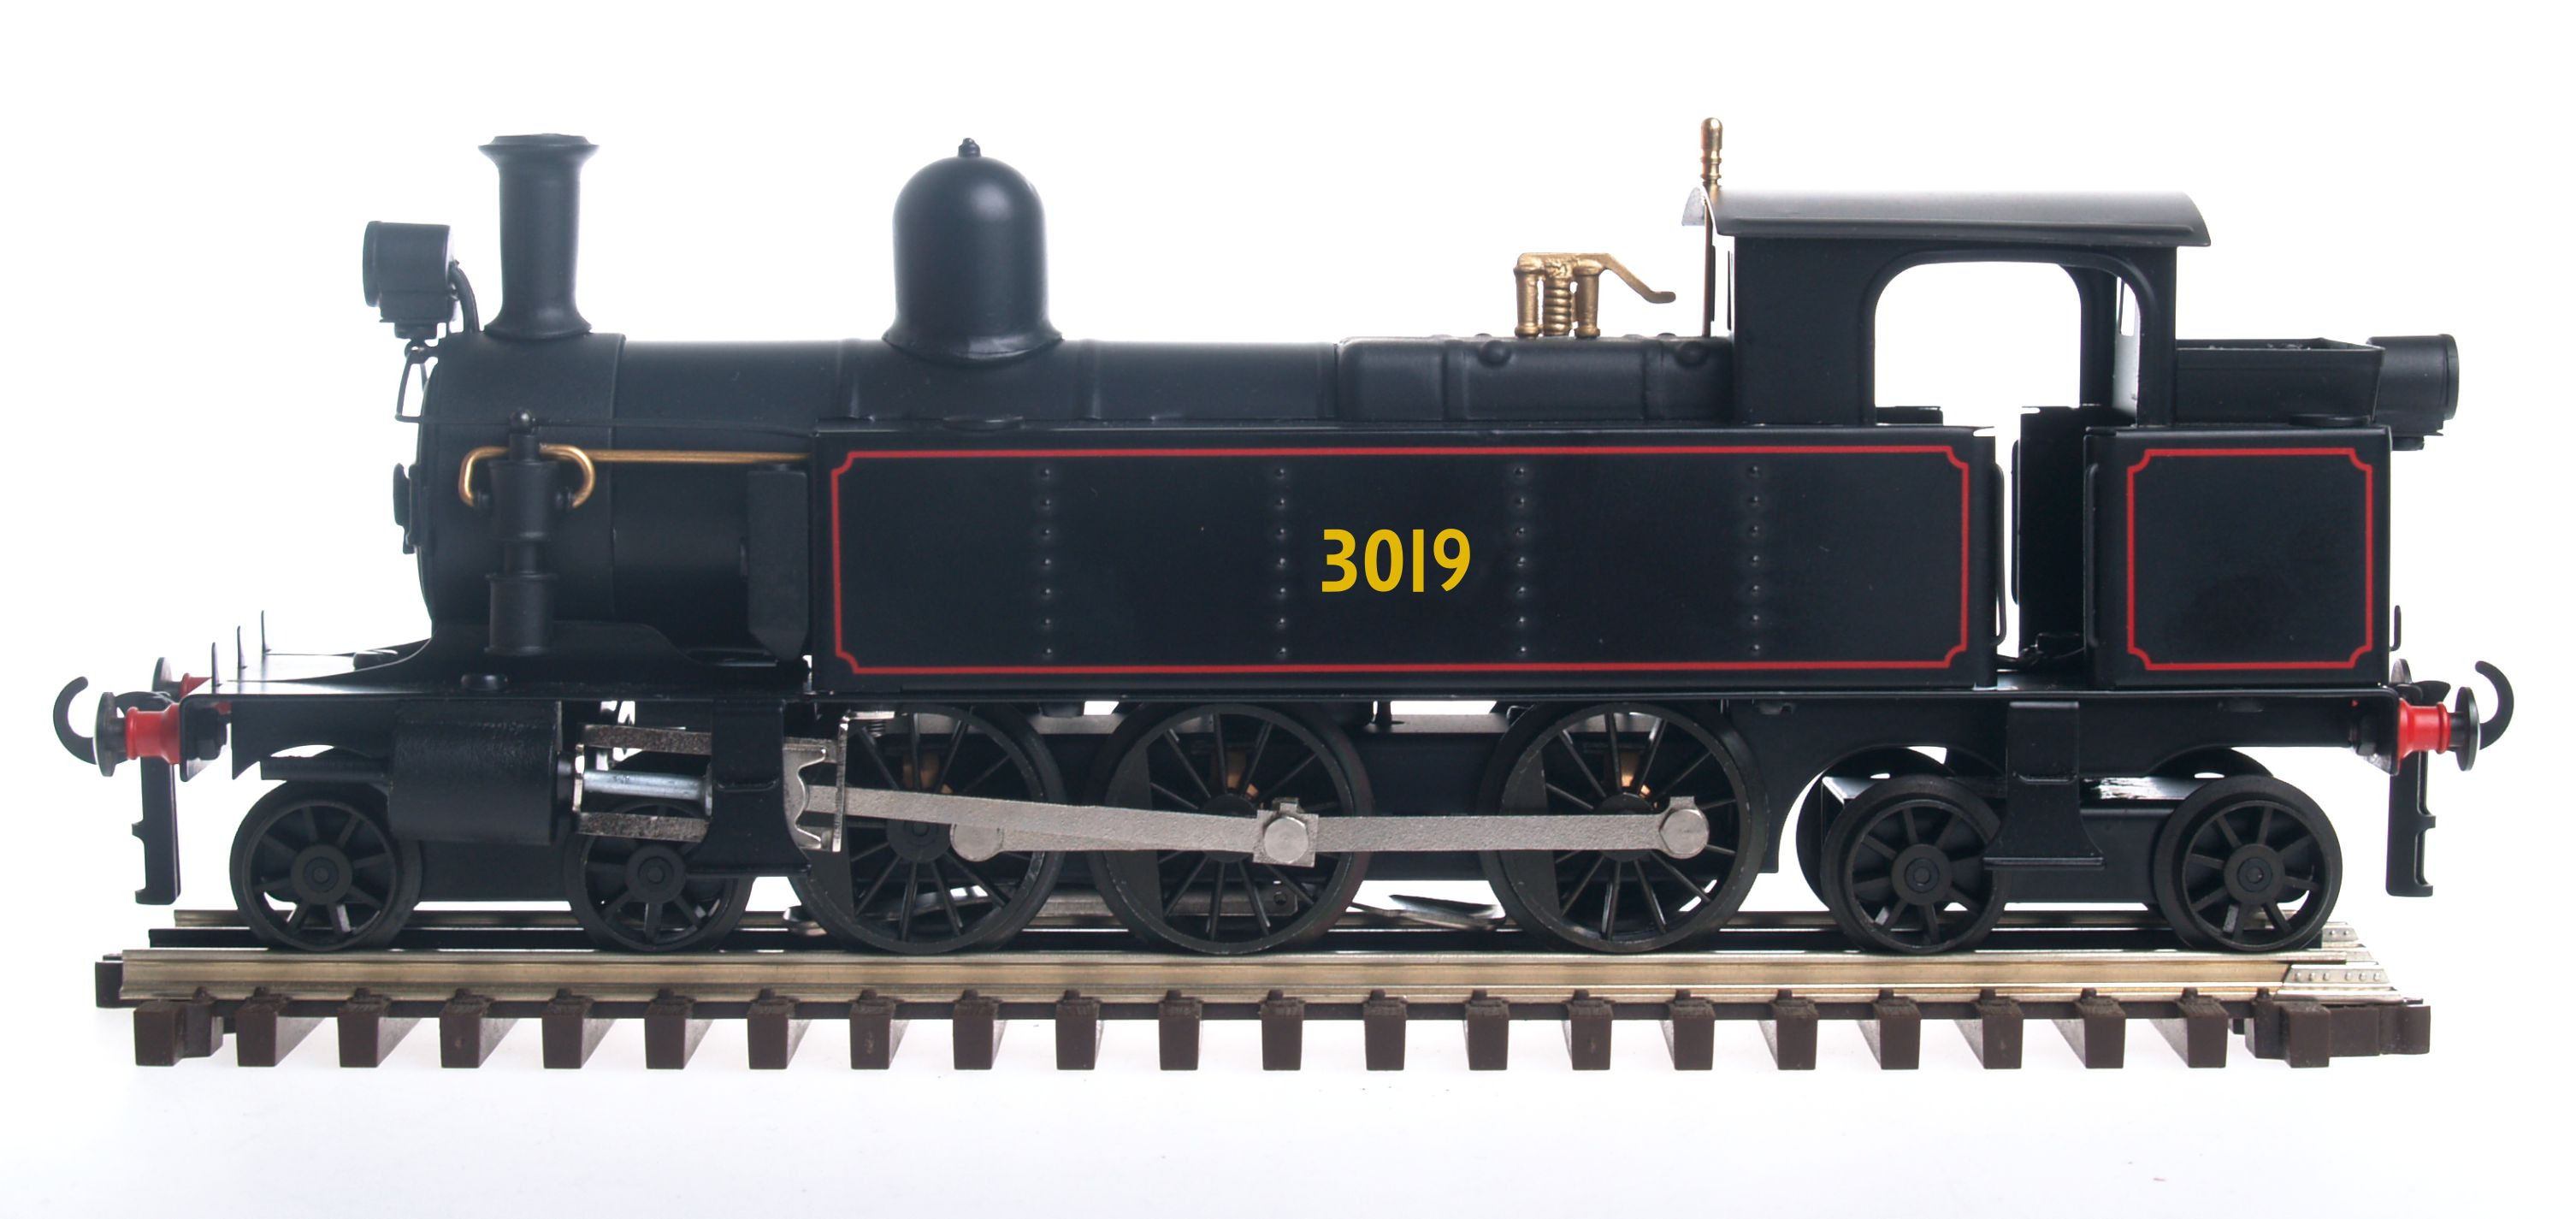 New South Wales Government Railway C30 Class 4-6-4T